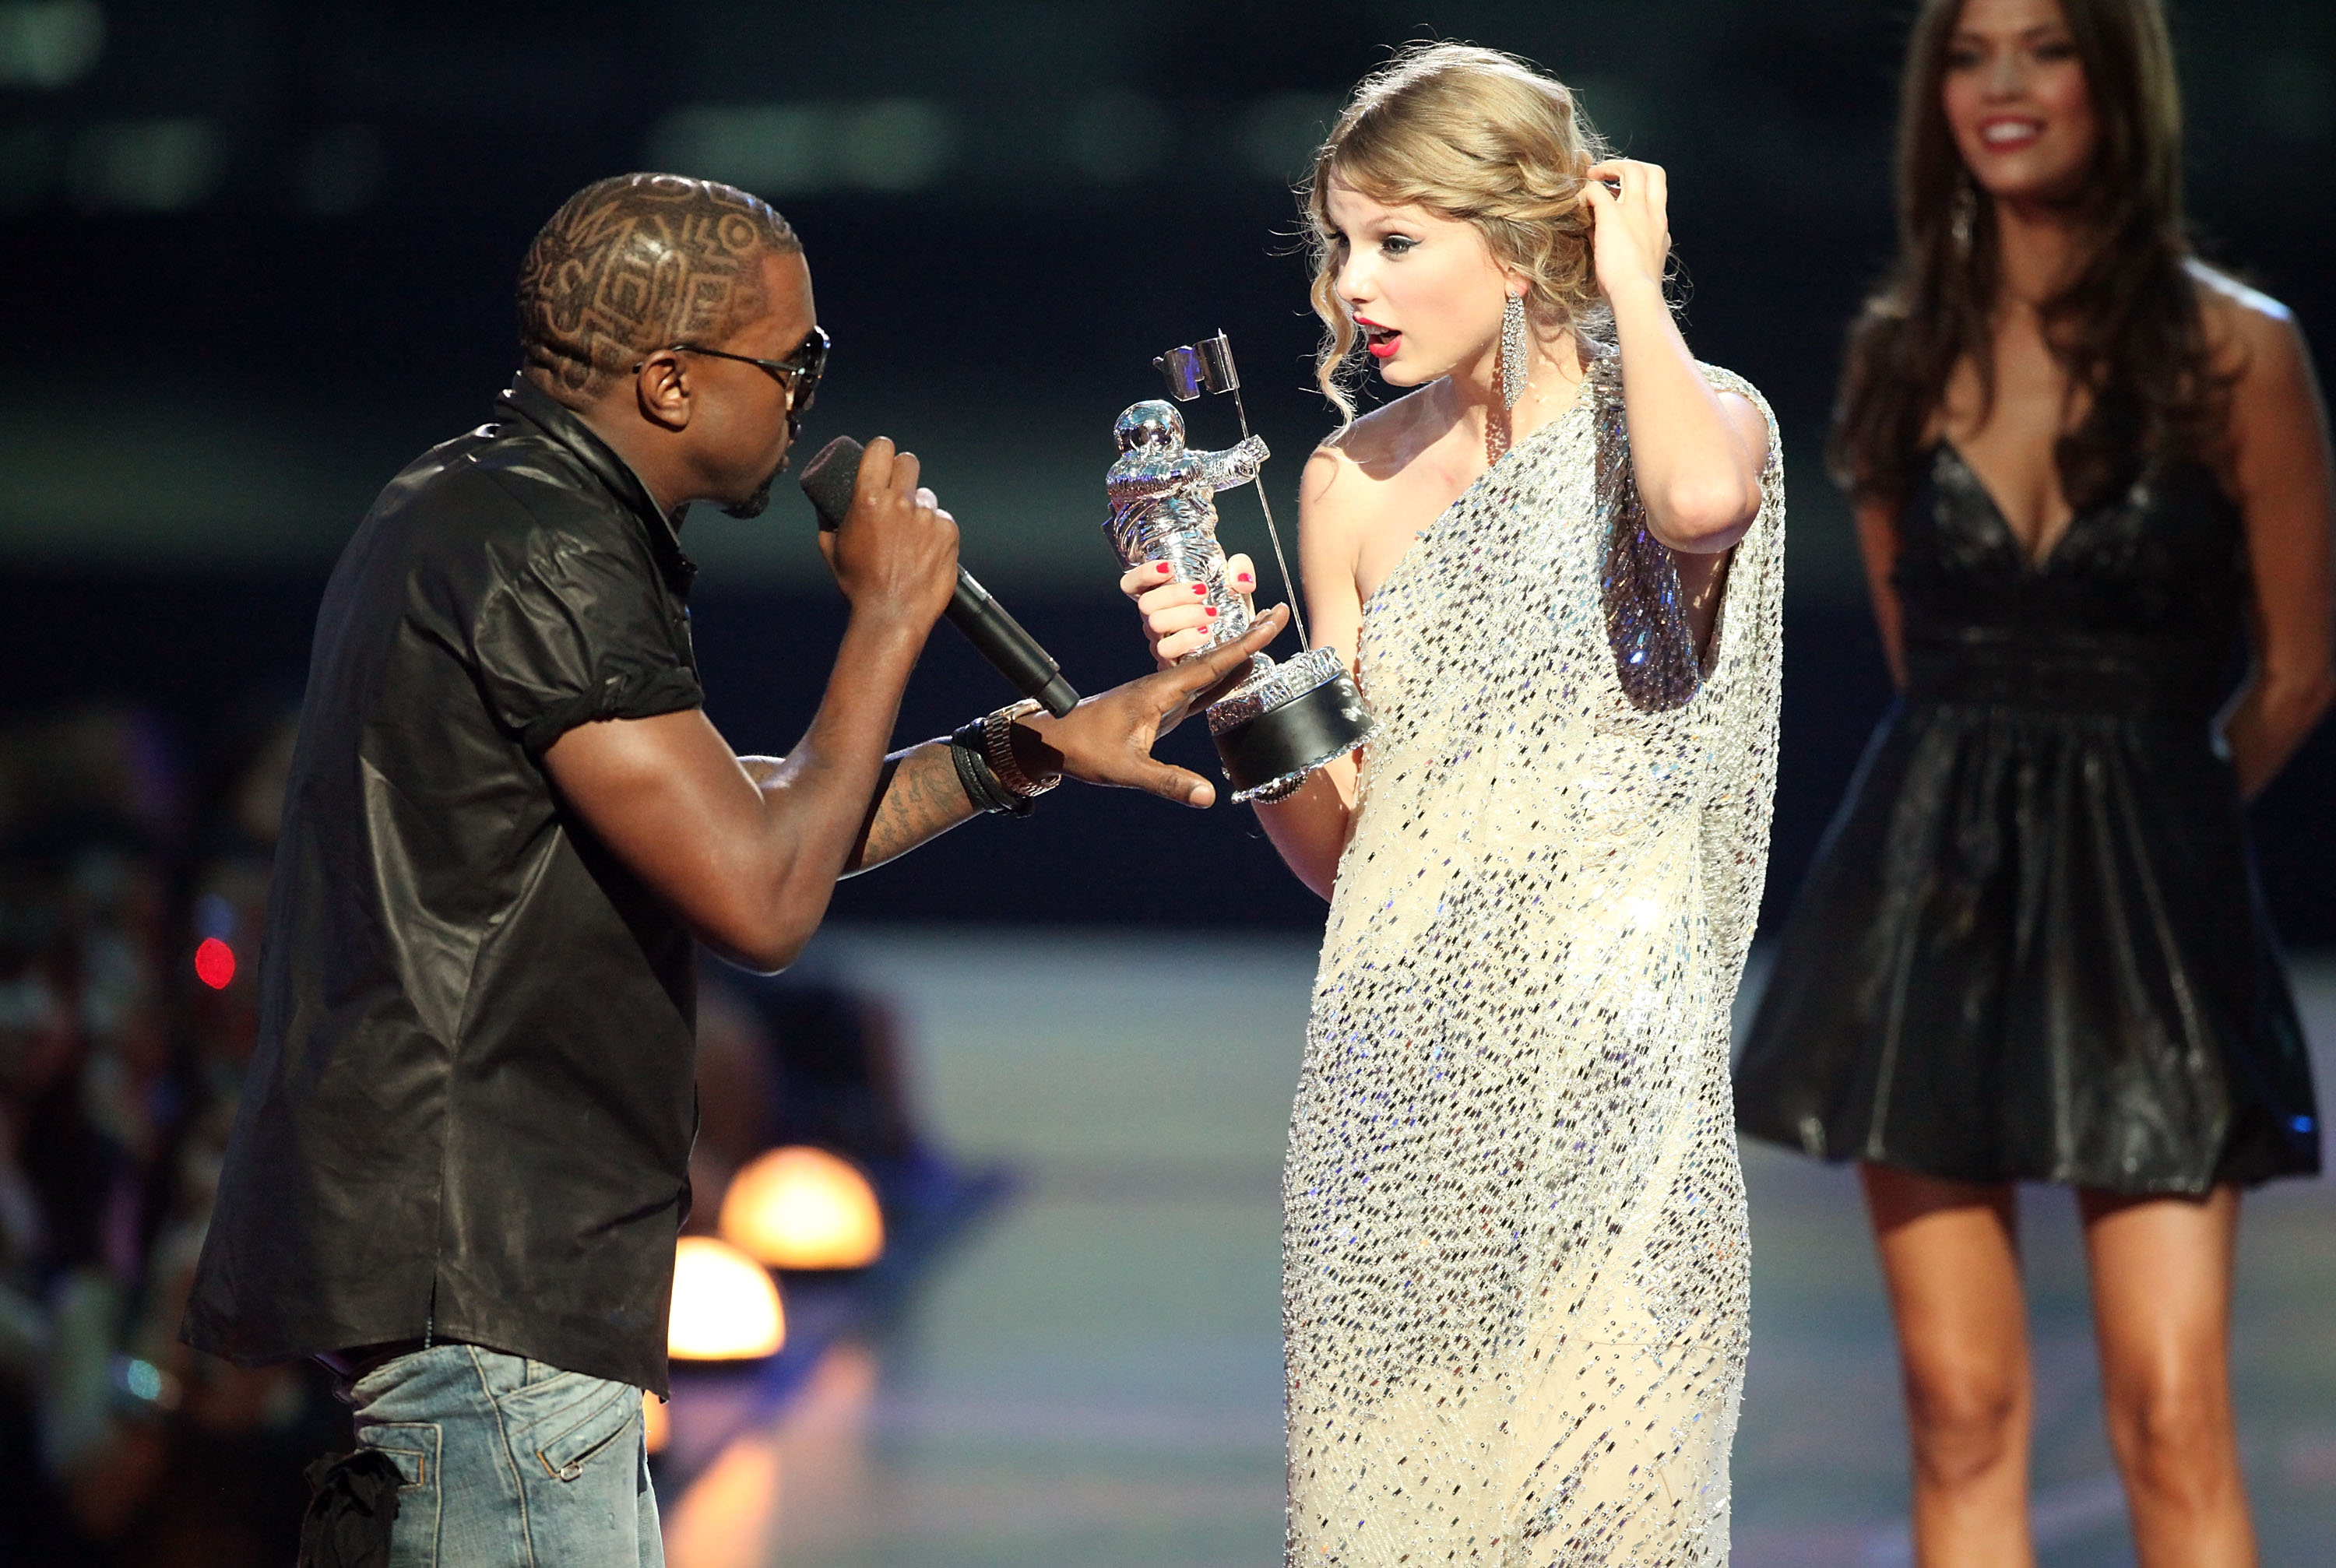 Kanye West (L) jumps onstage after Taylor Swift (C) won the 'Best Female Video' award during the 2009 MTV Video Music Awards at Radio City Music Hall on September 13, 2009 in New York City.